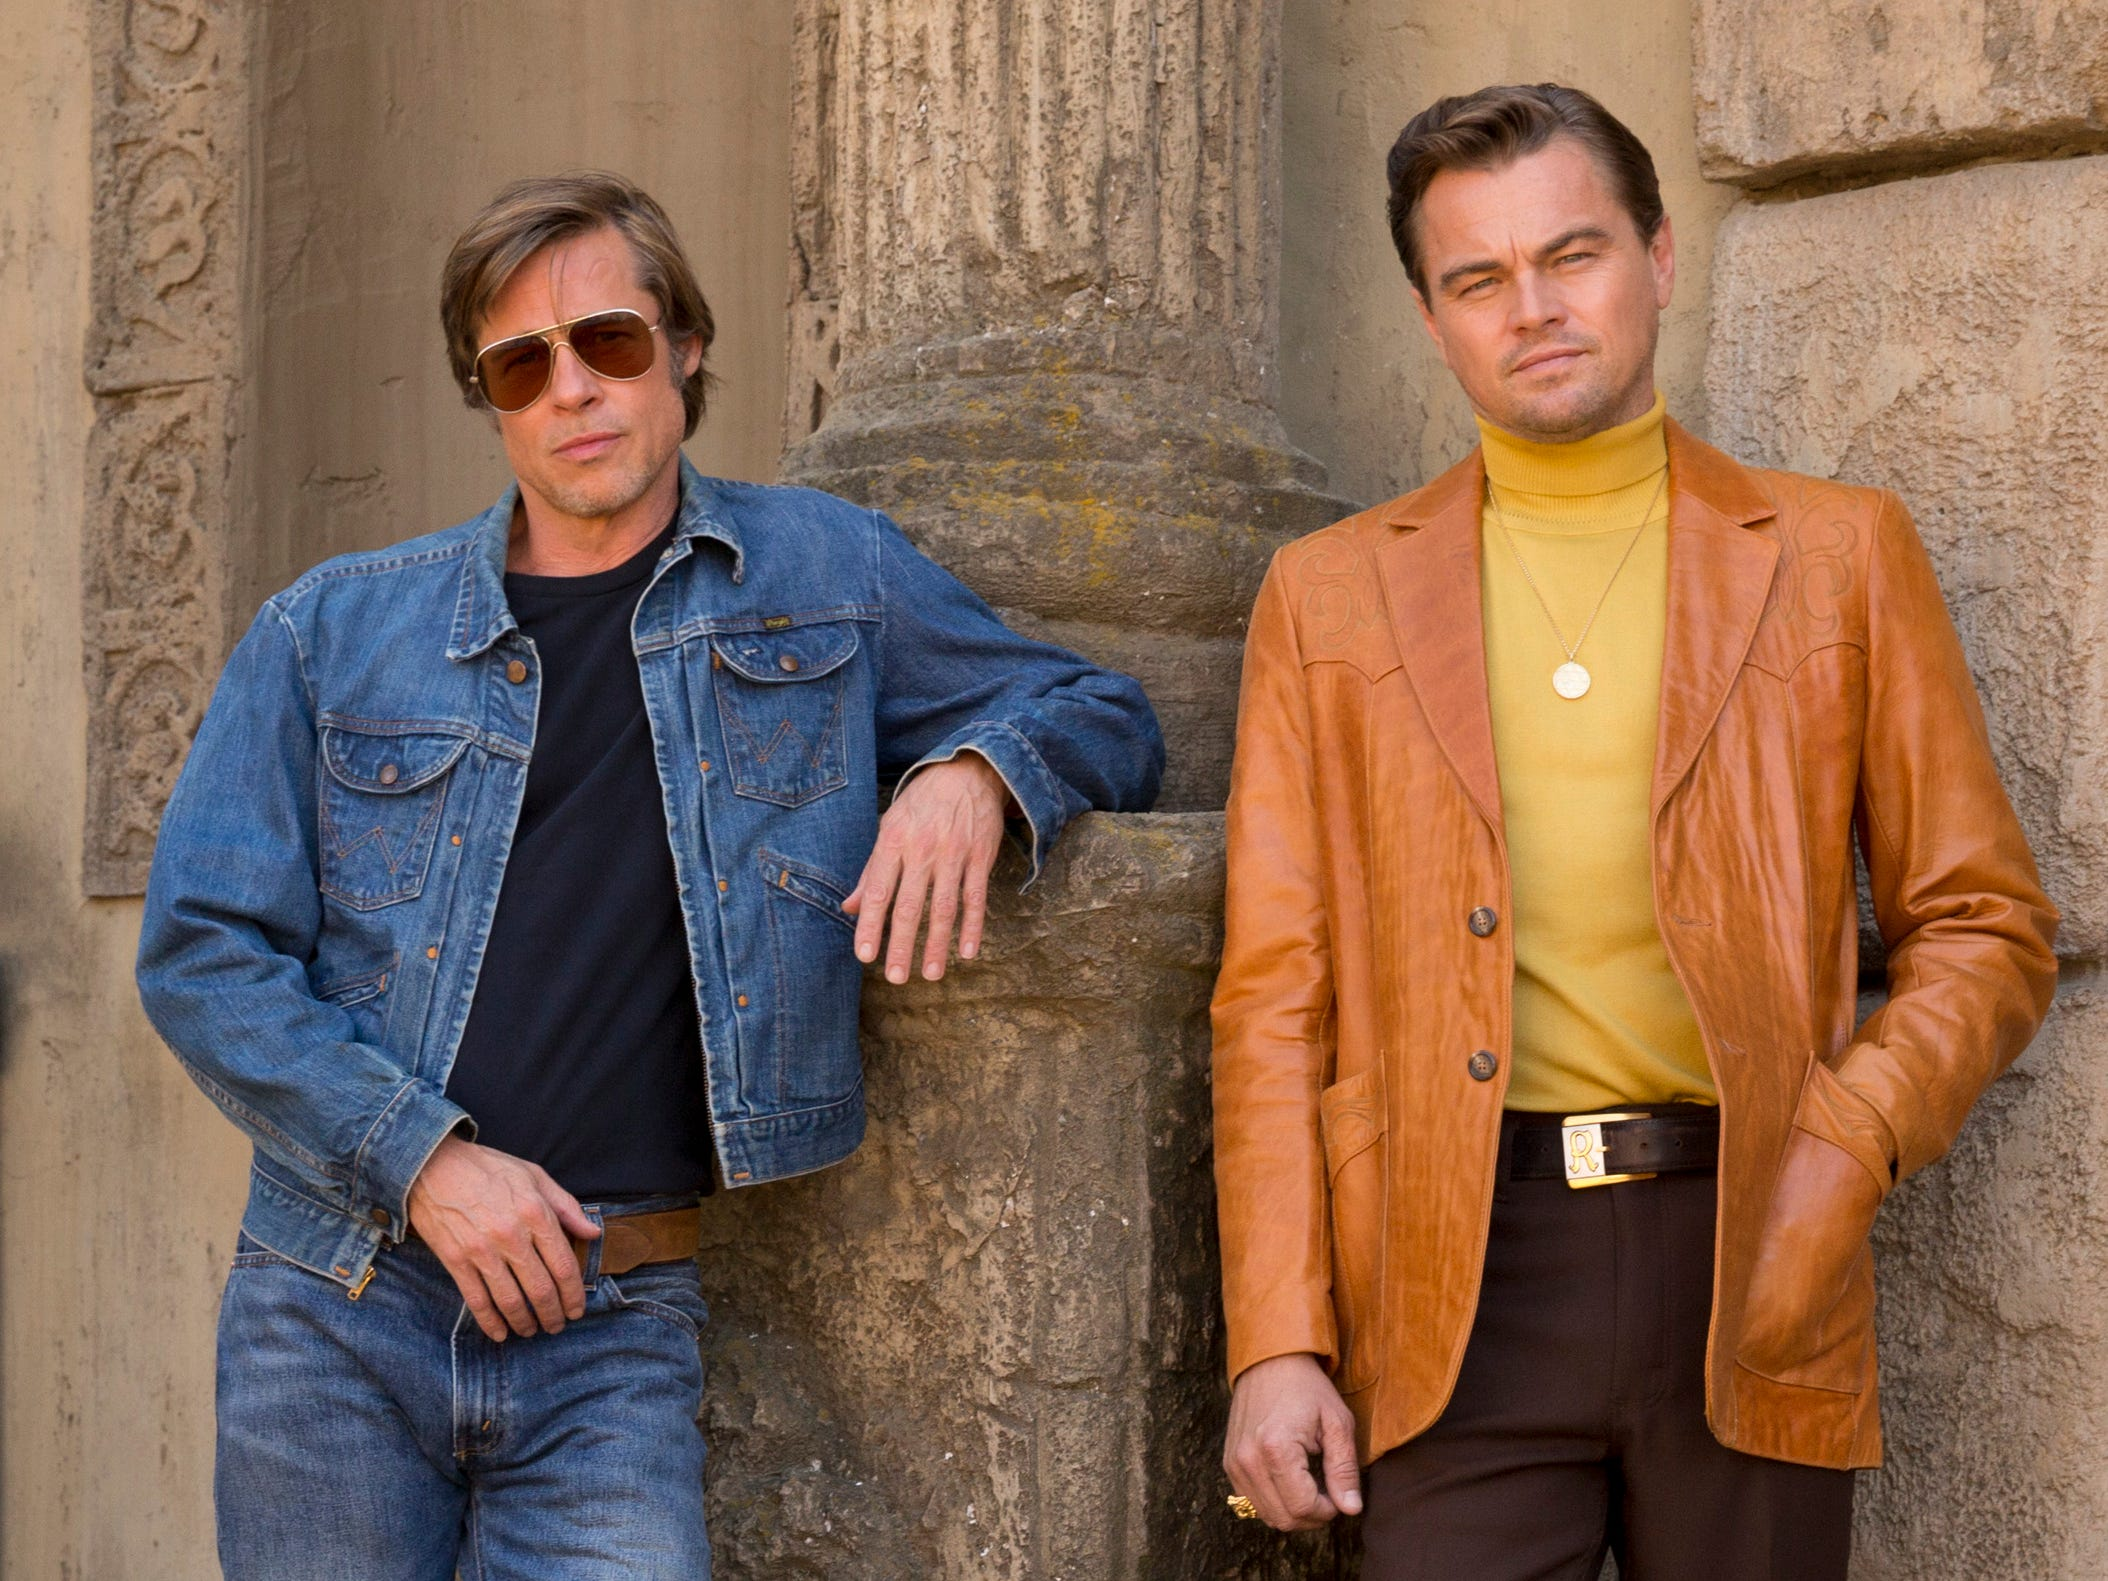 Leonardo DiCaprio, Brad Pitt go retro in first 'Once Upon a Time In Hollywood' poster